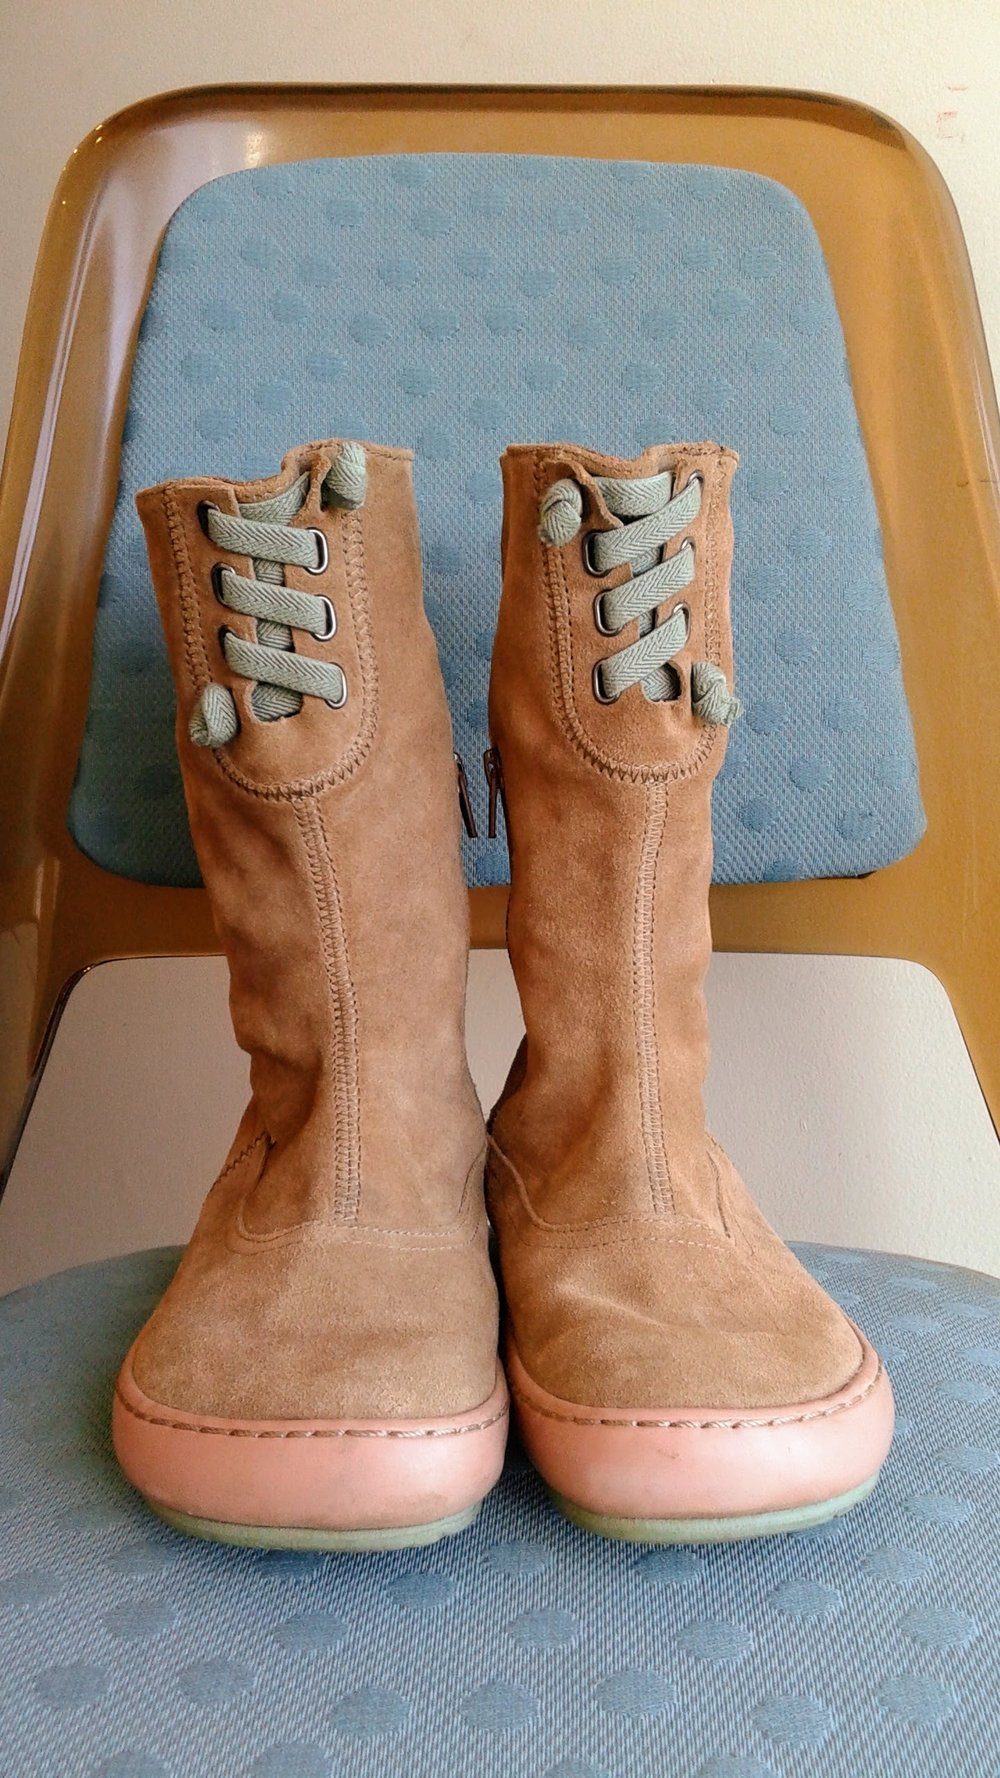 Camper boots; S7, $62